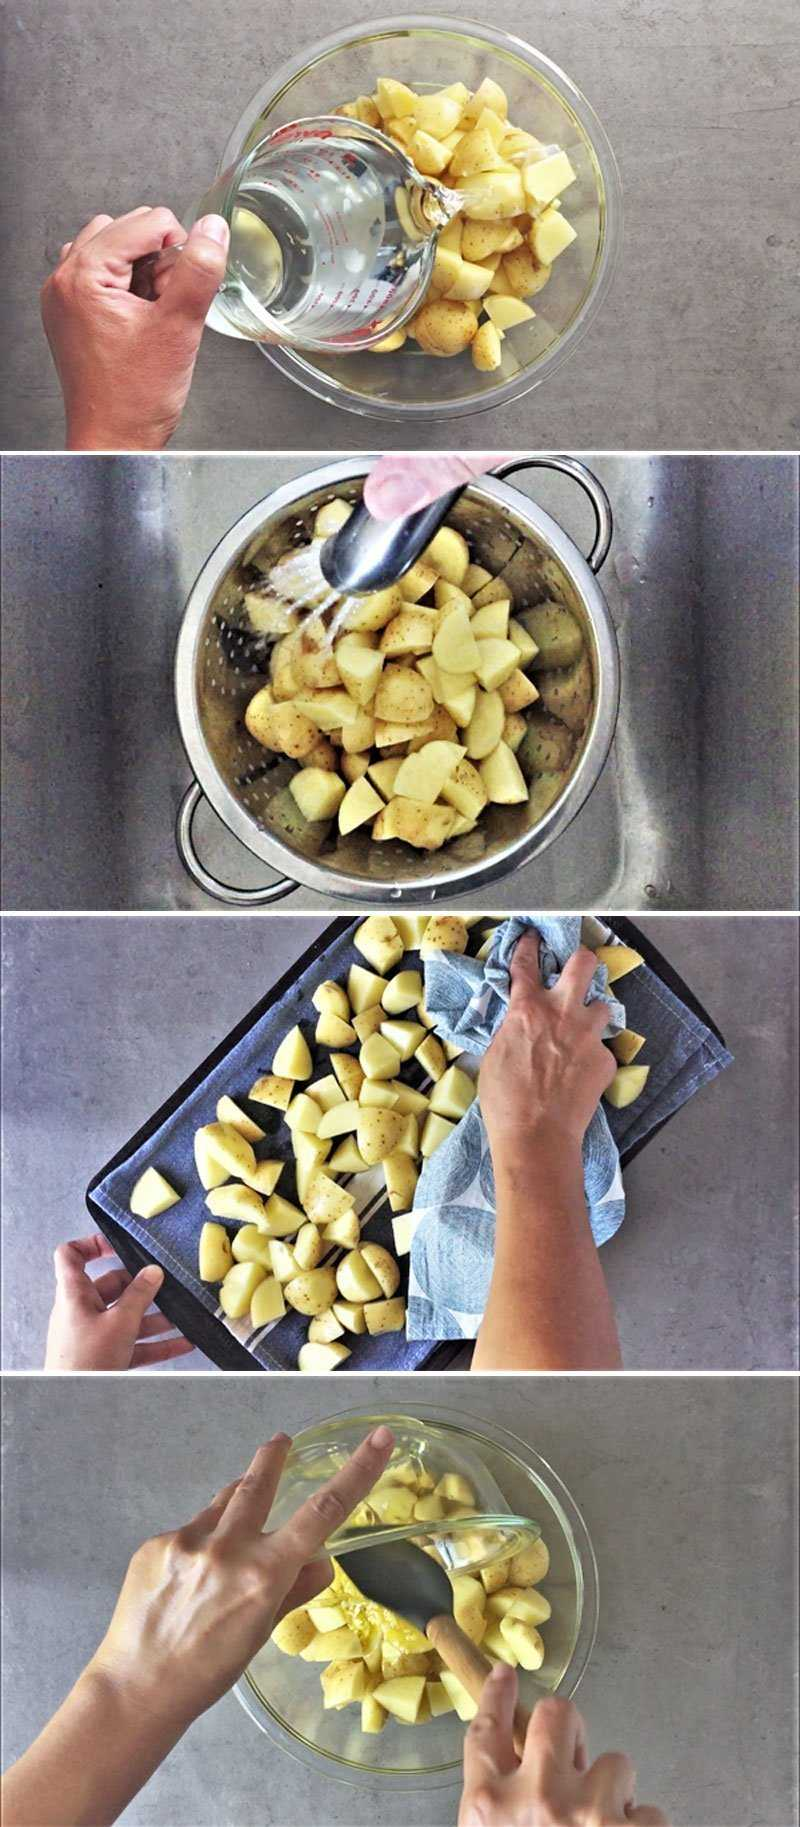 How to roast crispy potatoes with garlic and herbs.